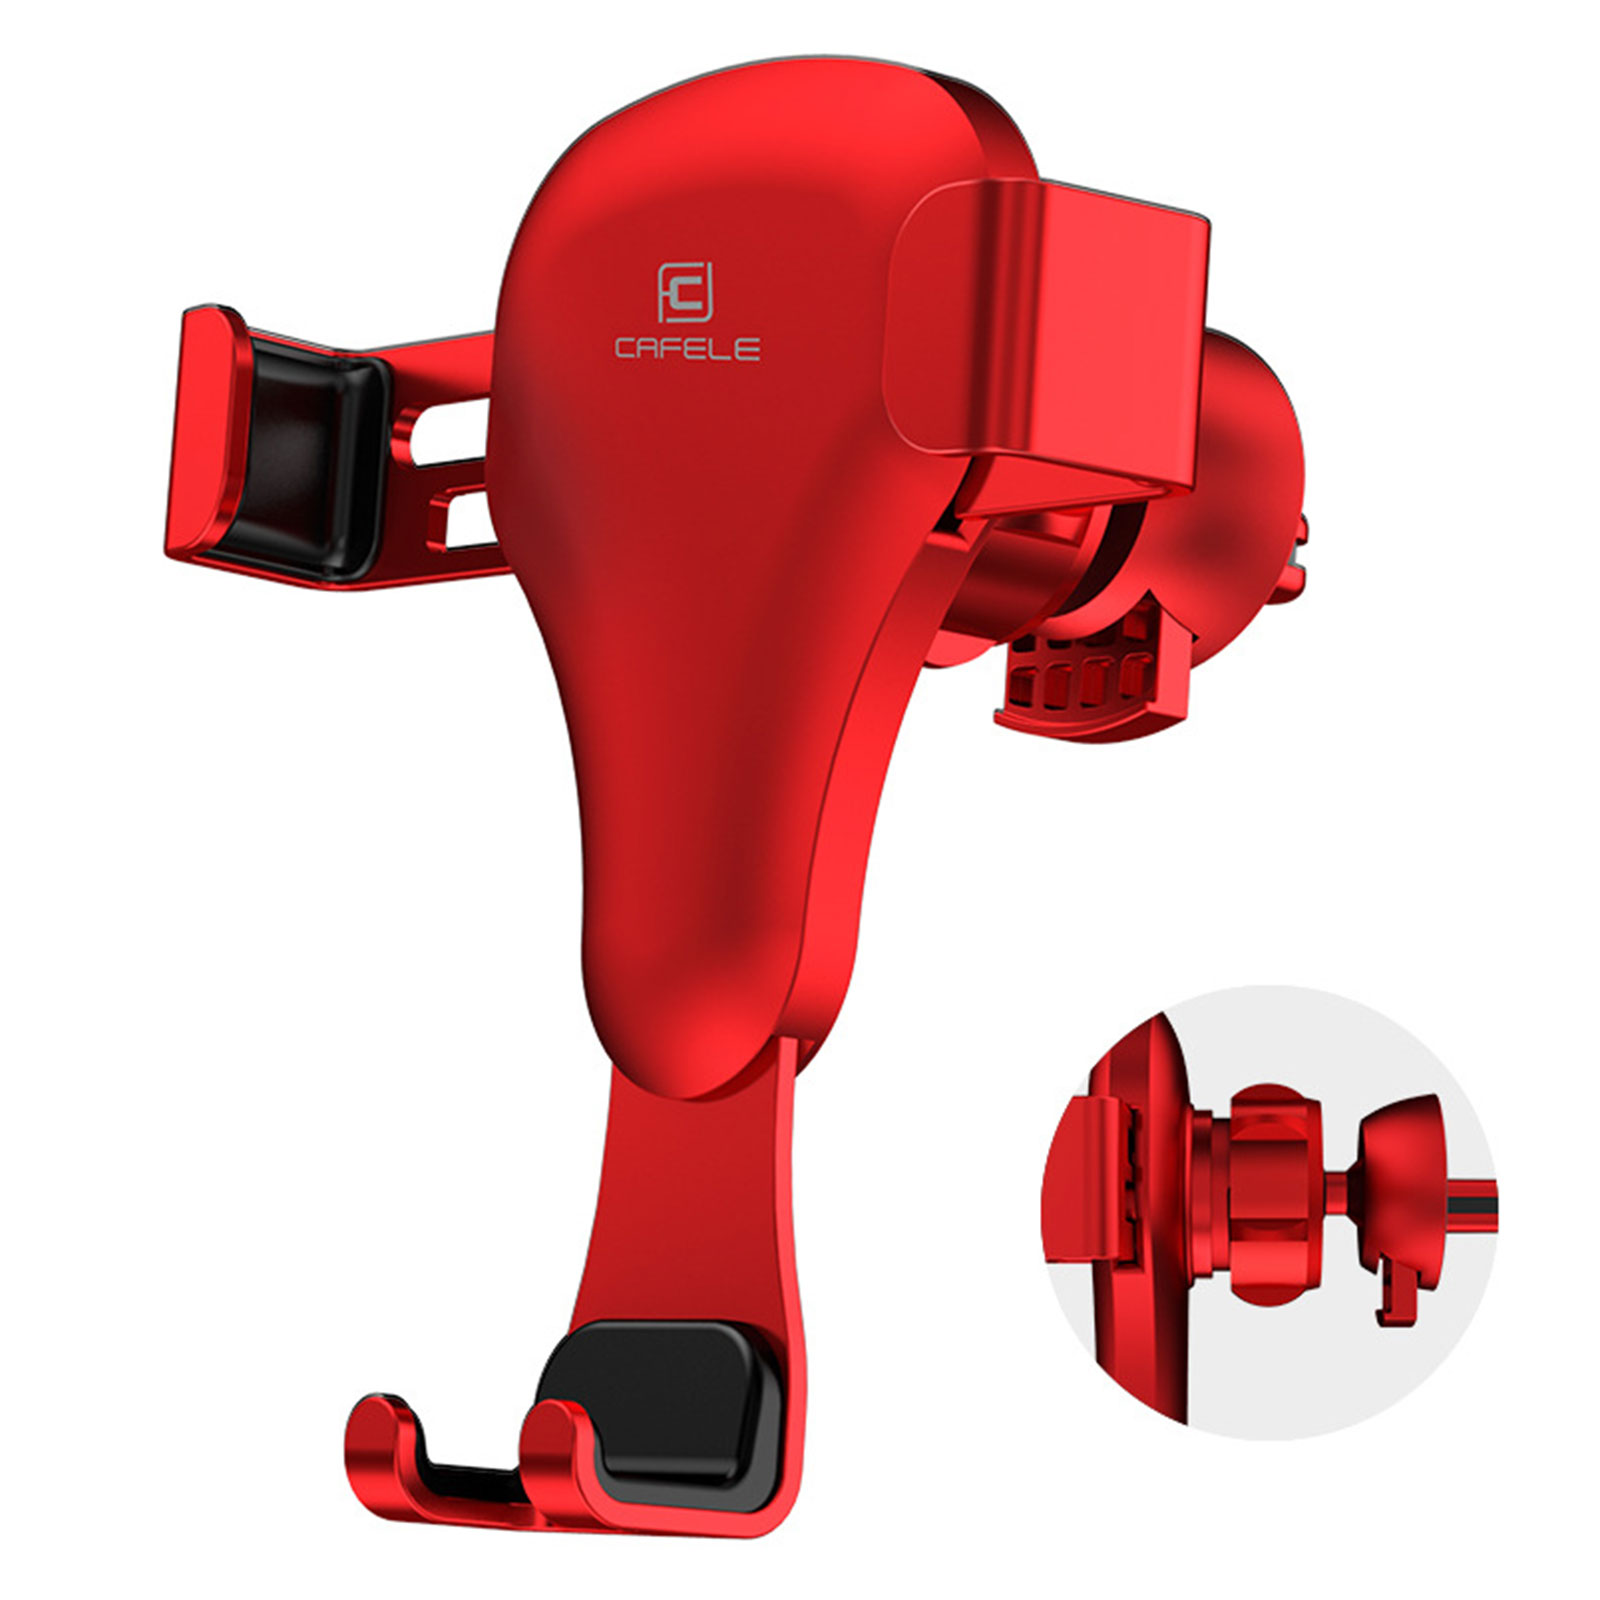 Universal-Car-Mount-Air-Vent-Holder-Dashboard-Cradle-for-iPhone-Galaxy-Phone